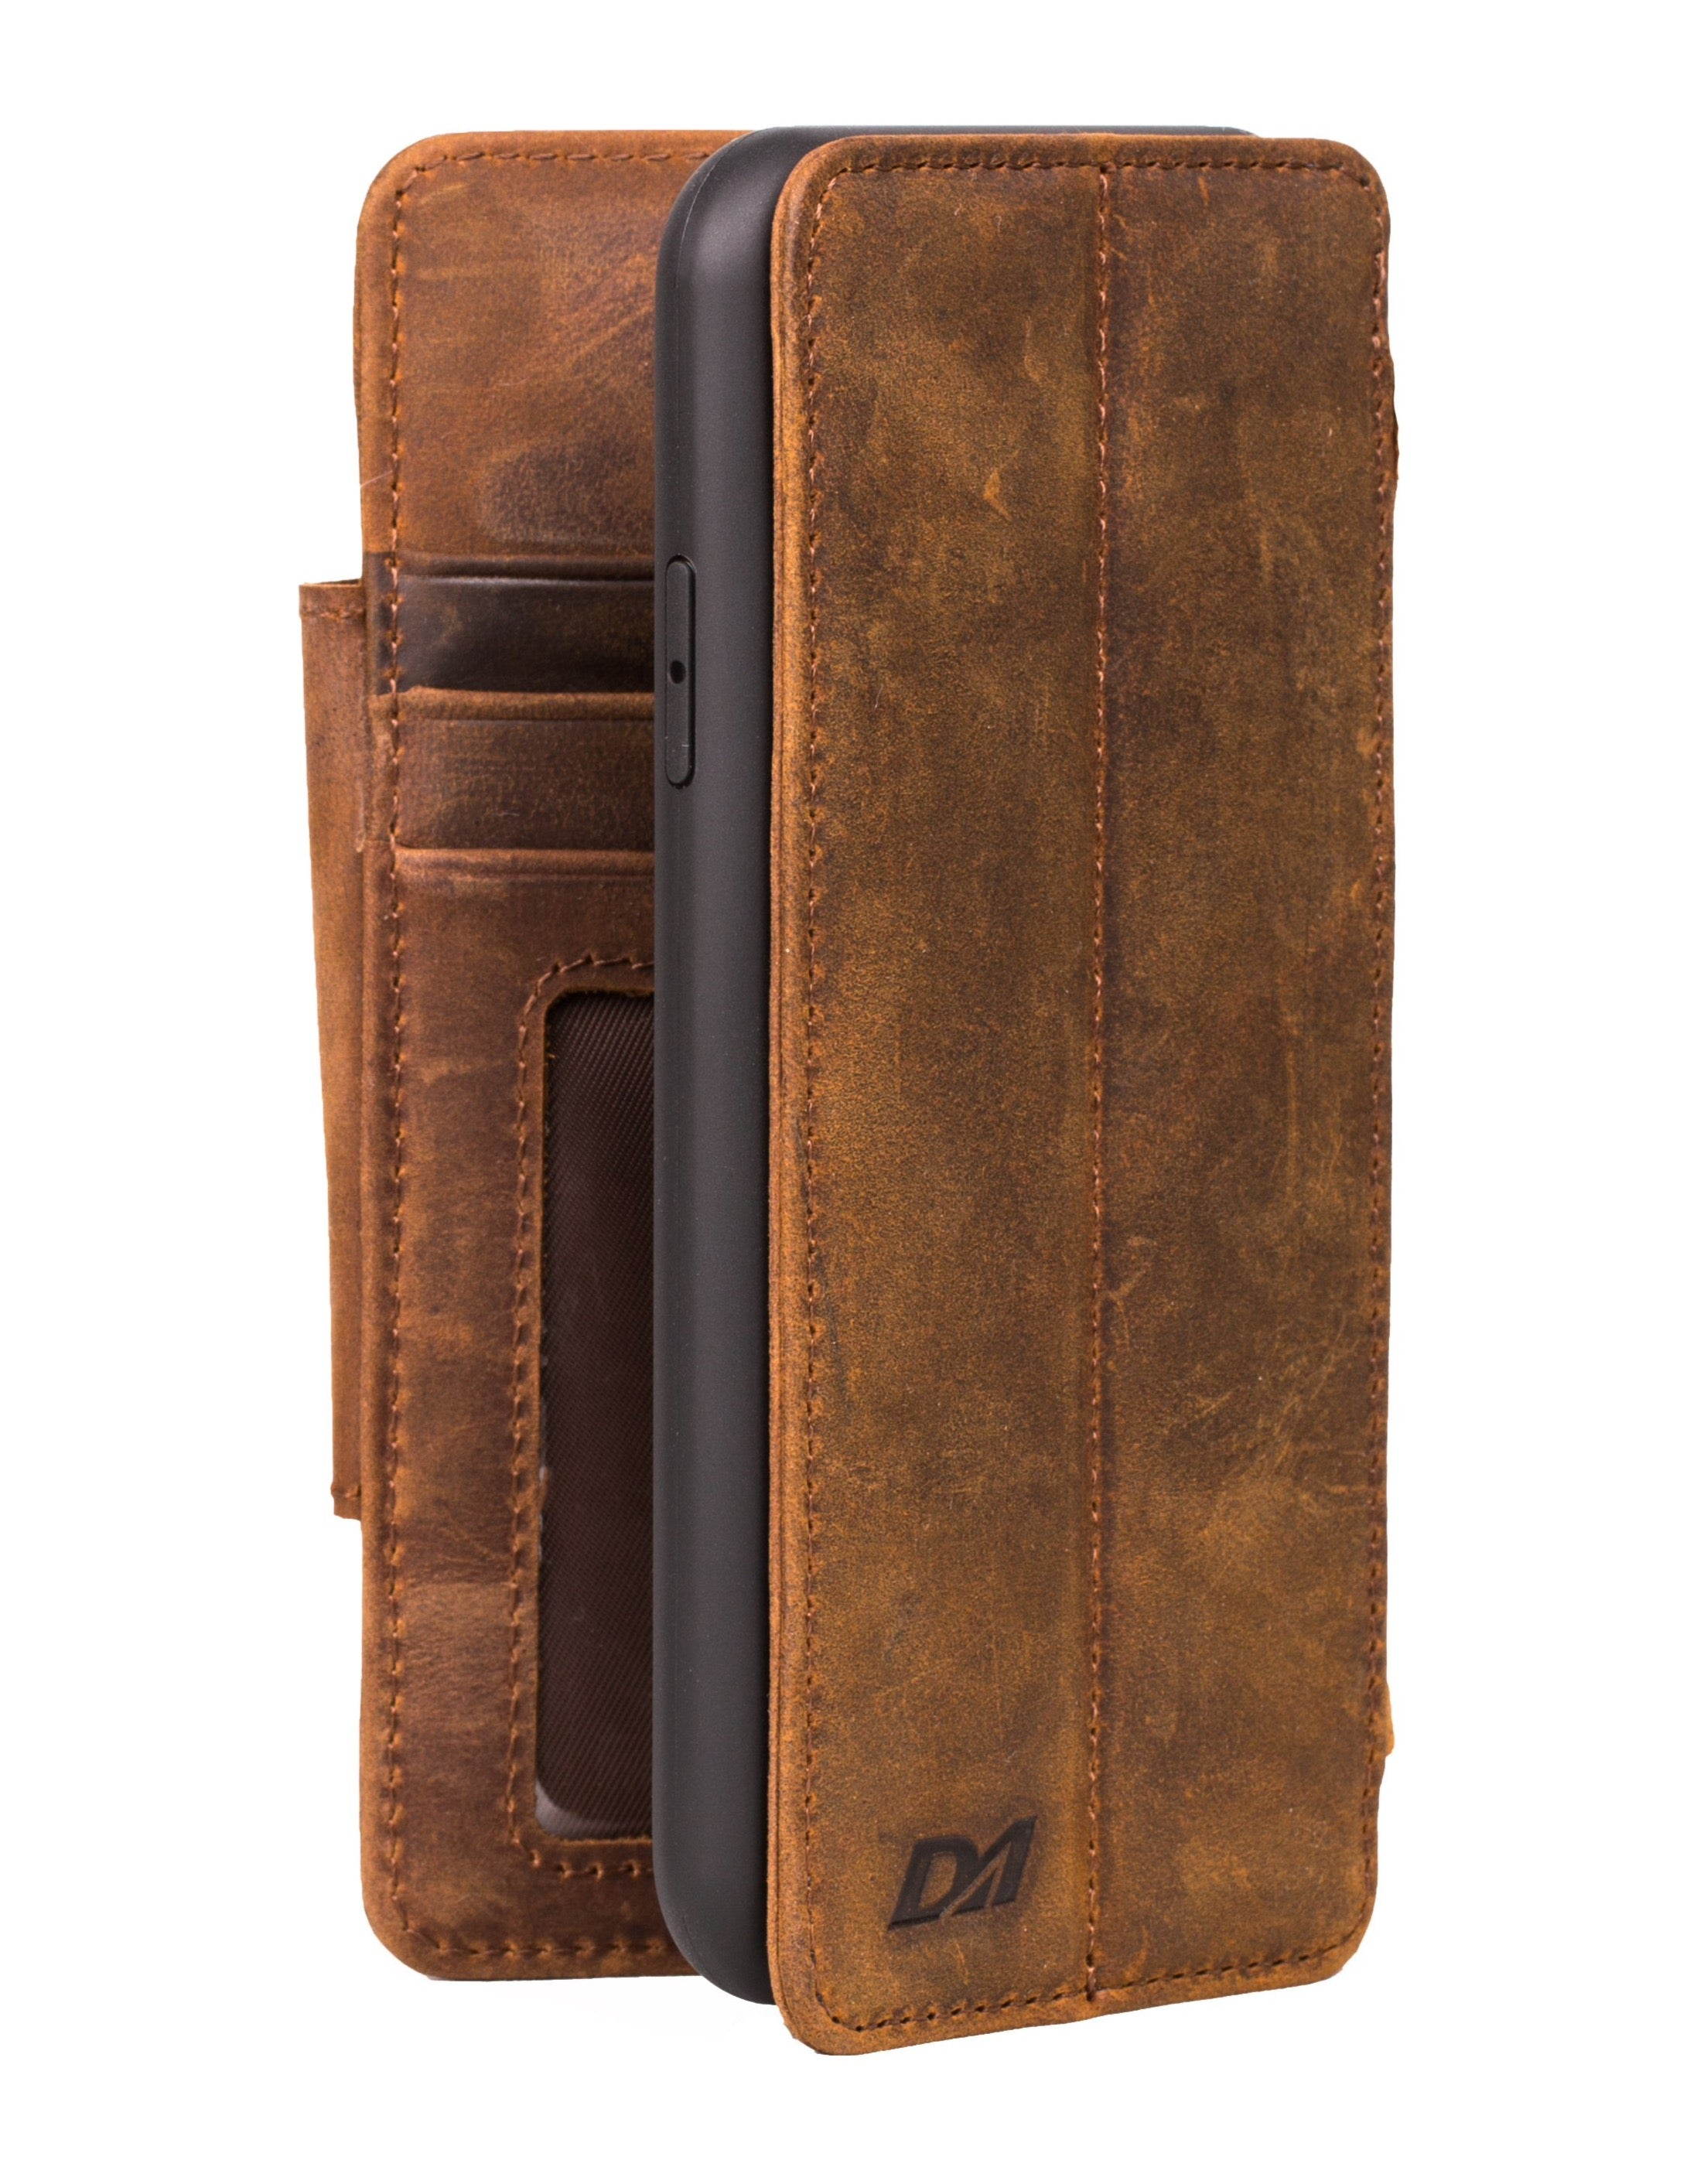 sport-brown iphone-x-xs iphone-xr iphone-8 iphone-7 galaxy-s9 galaxy-s10 galaxy-s10e